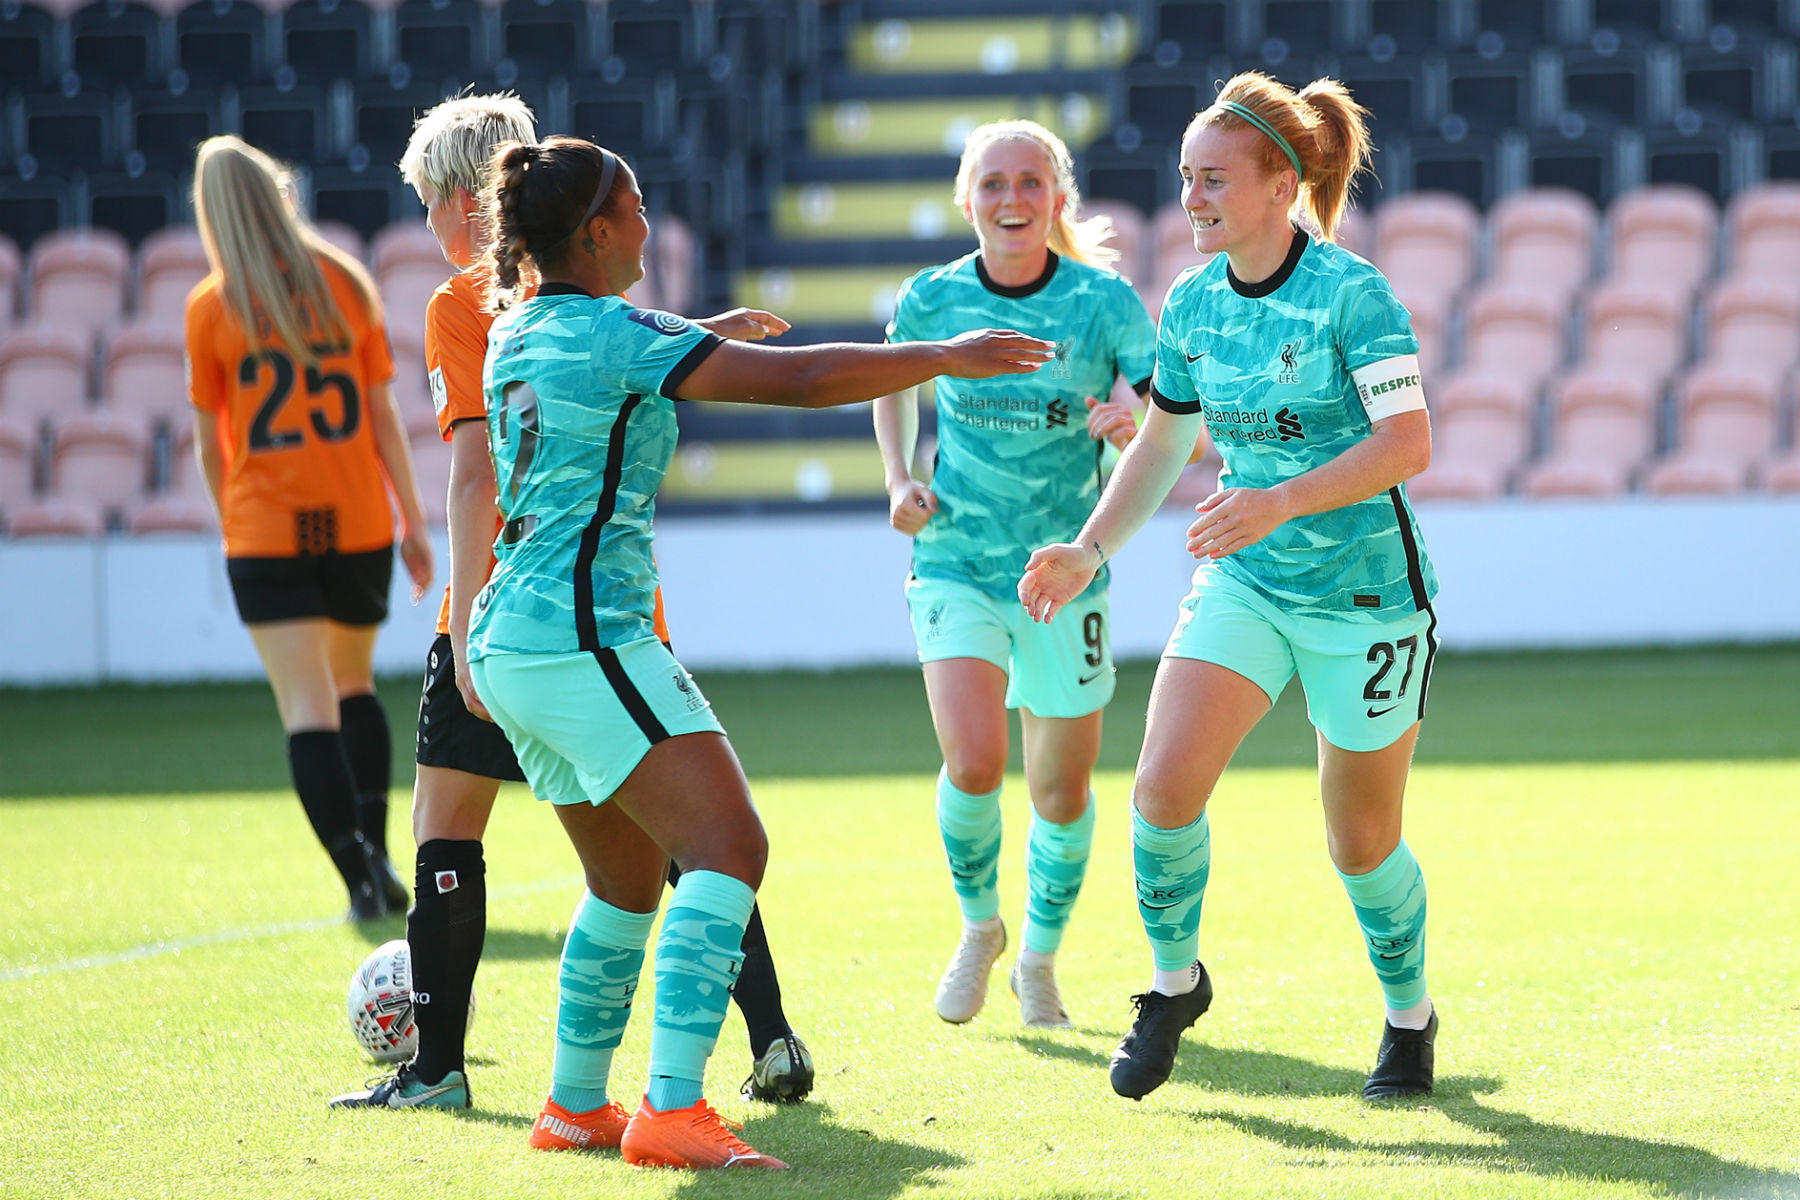 Match report: London Bees 0-3 Liverpool FC Women - Liverpool FC